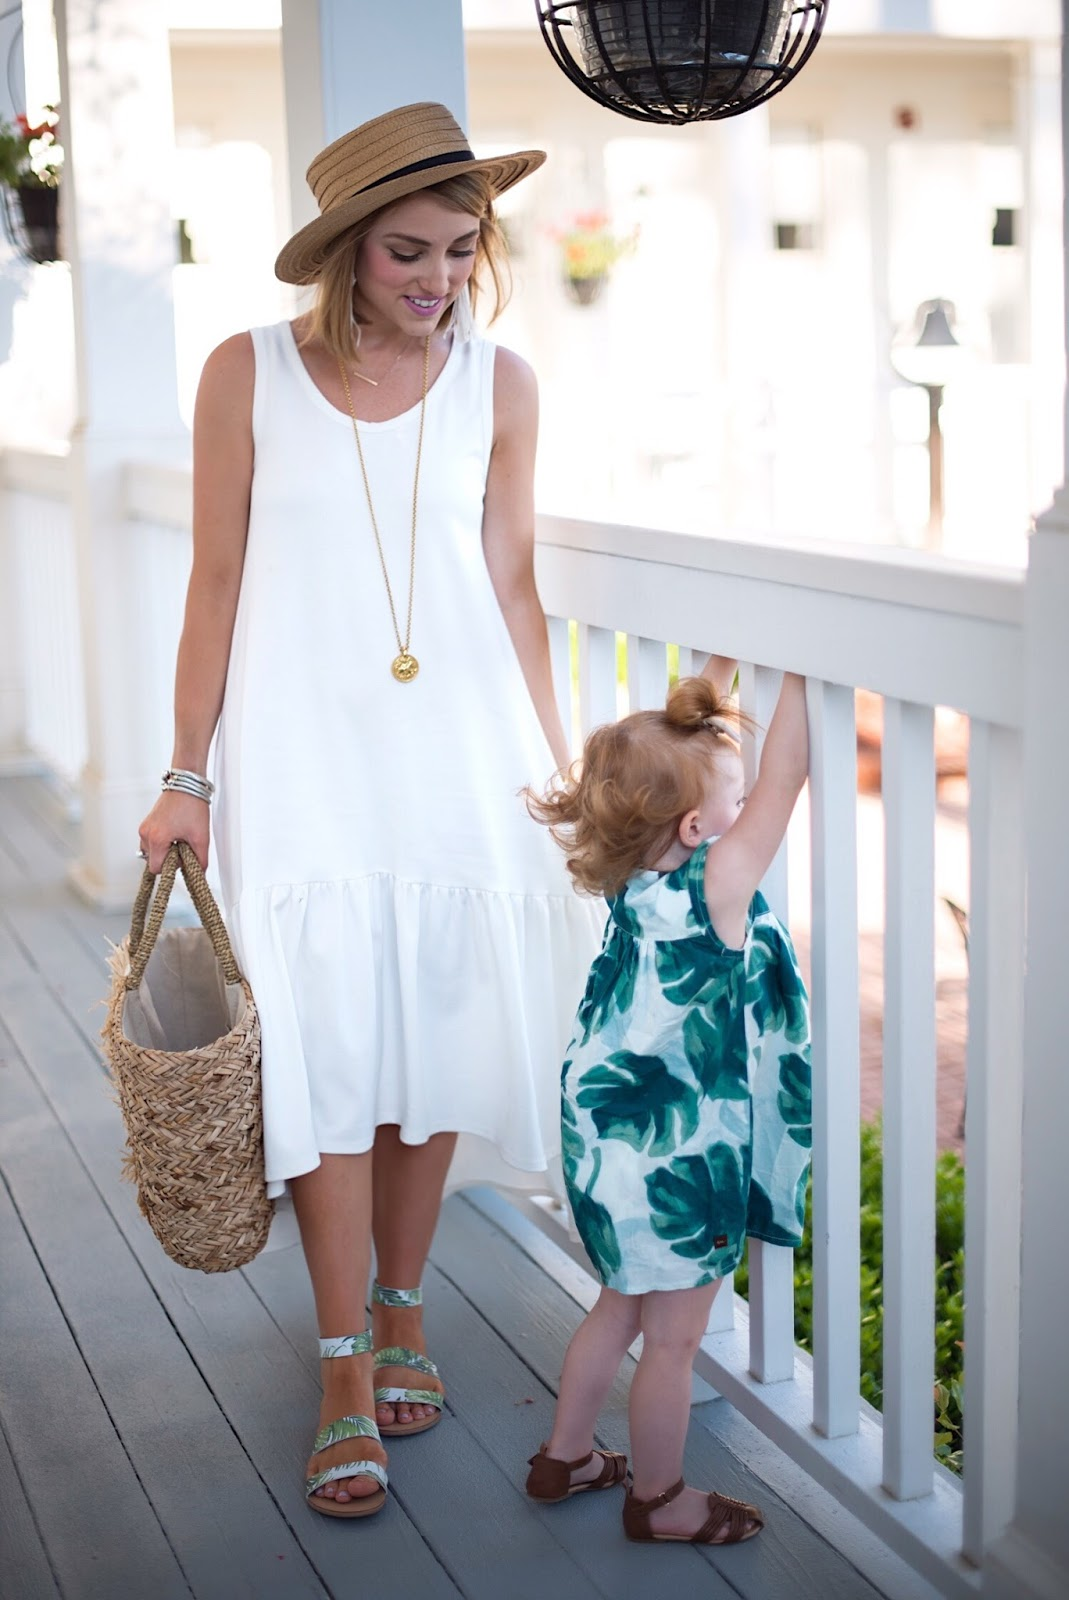 Mommy and me outfits + $200 Nordstrom gift card Mother's Day giveaway! - Click through to see more on Something Delightful Blog!